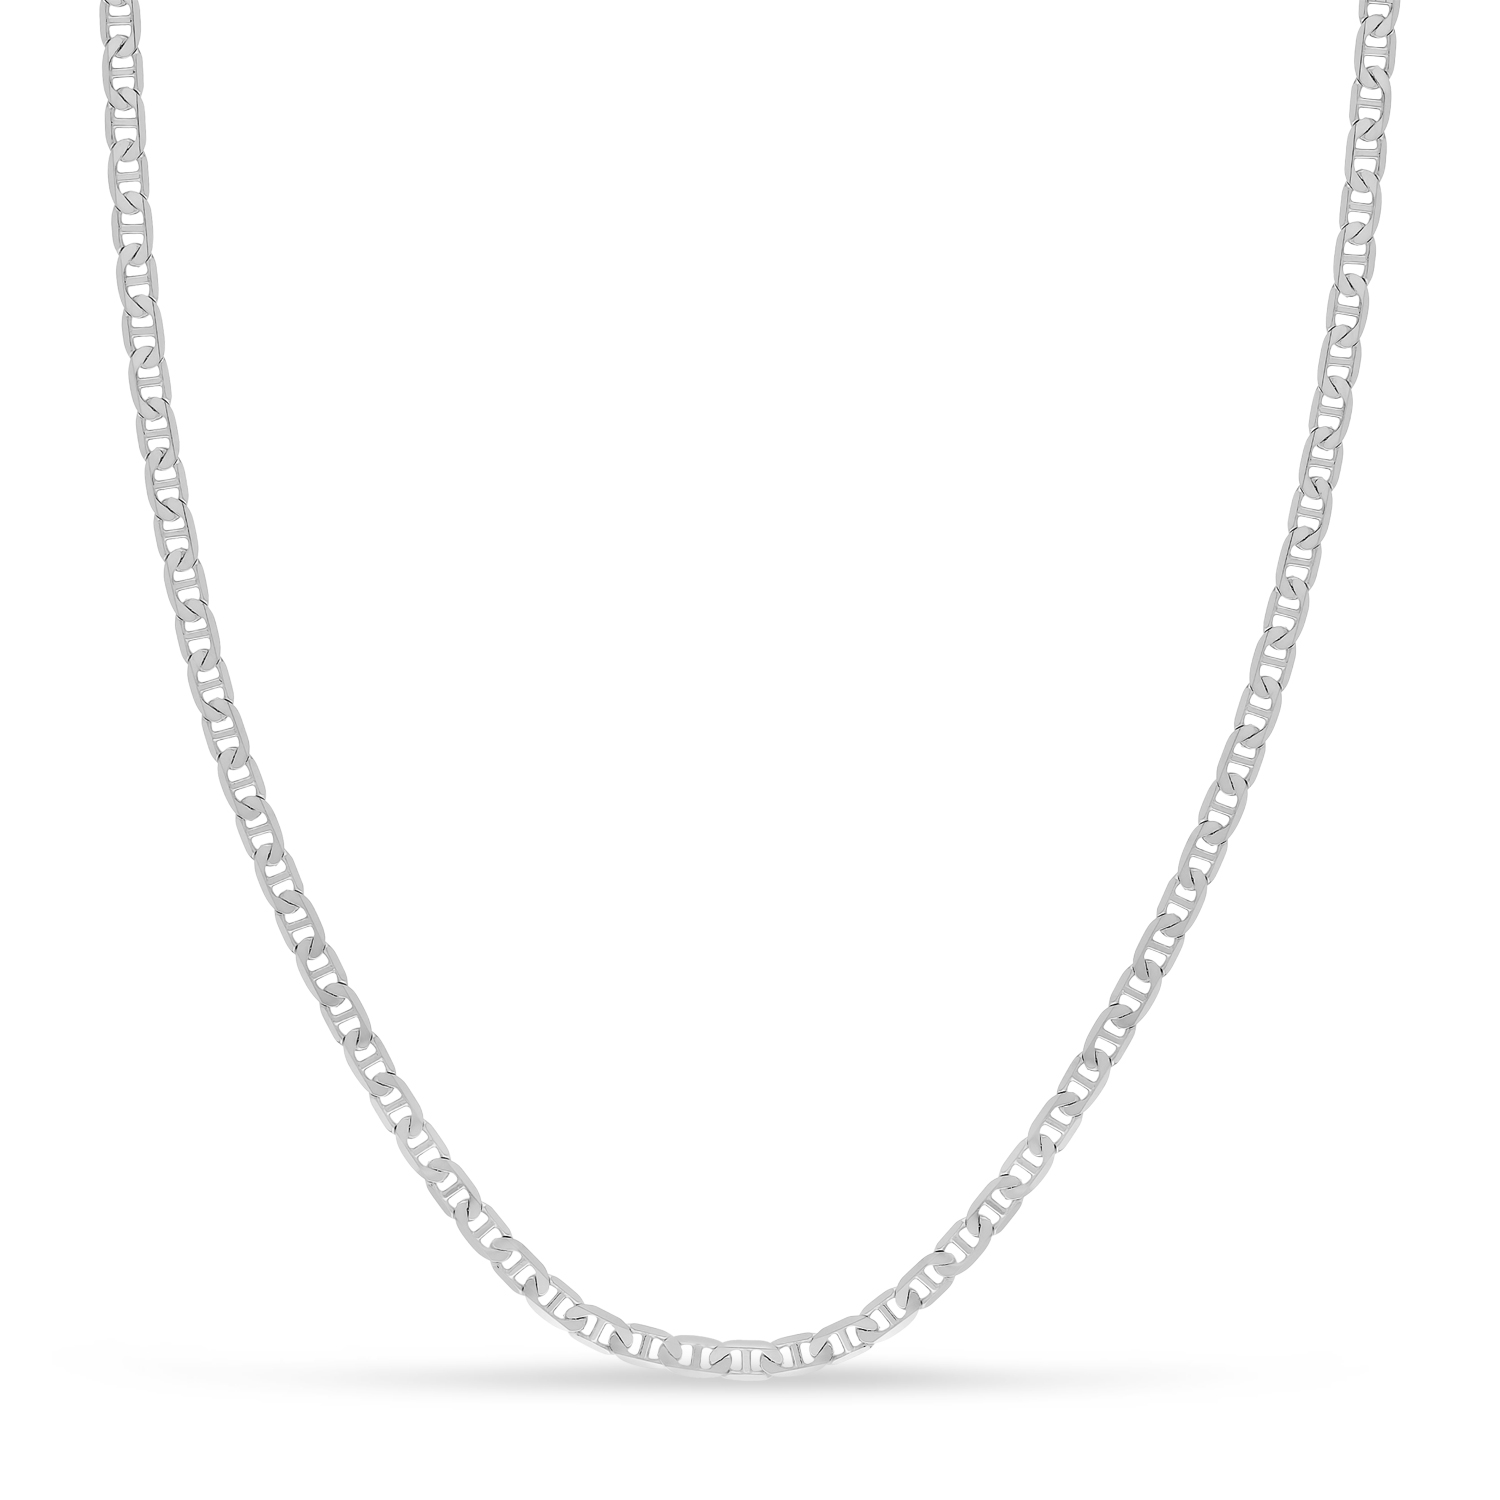 Mariner Chain Necklace With Lobster Lock 14k White Gold